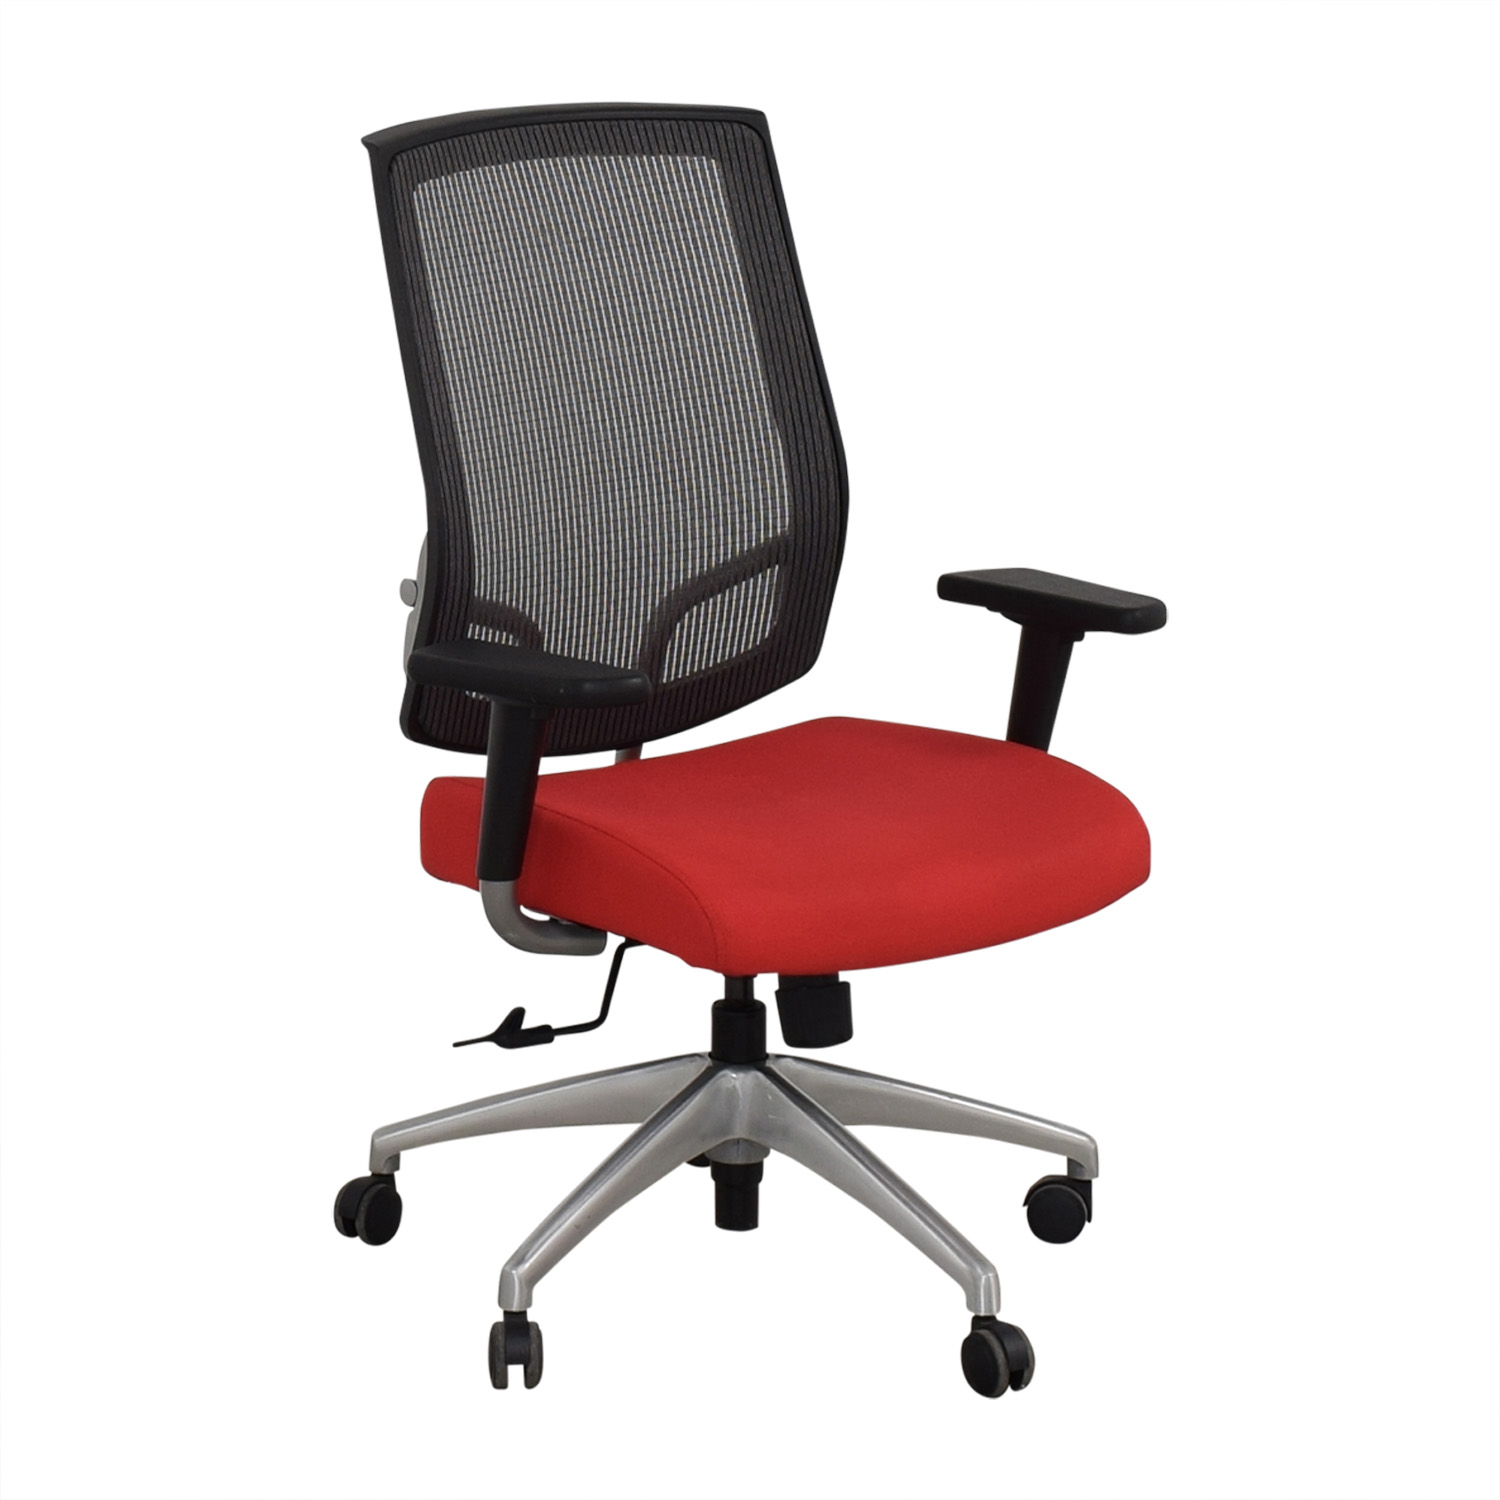 SitOnIt SitOnIt Focus High Back Office Chair Home Office Chairs